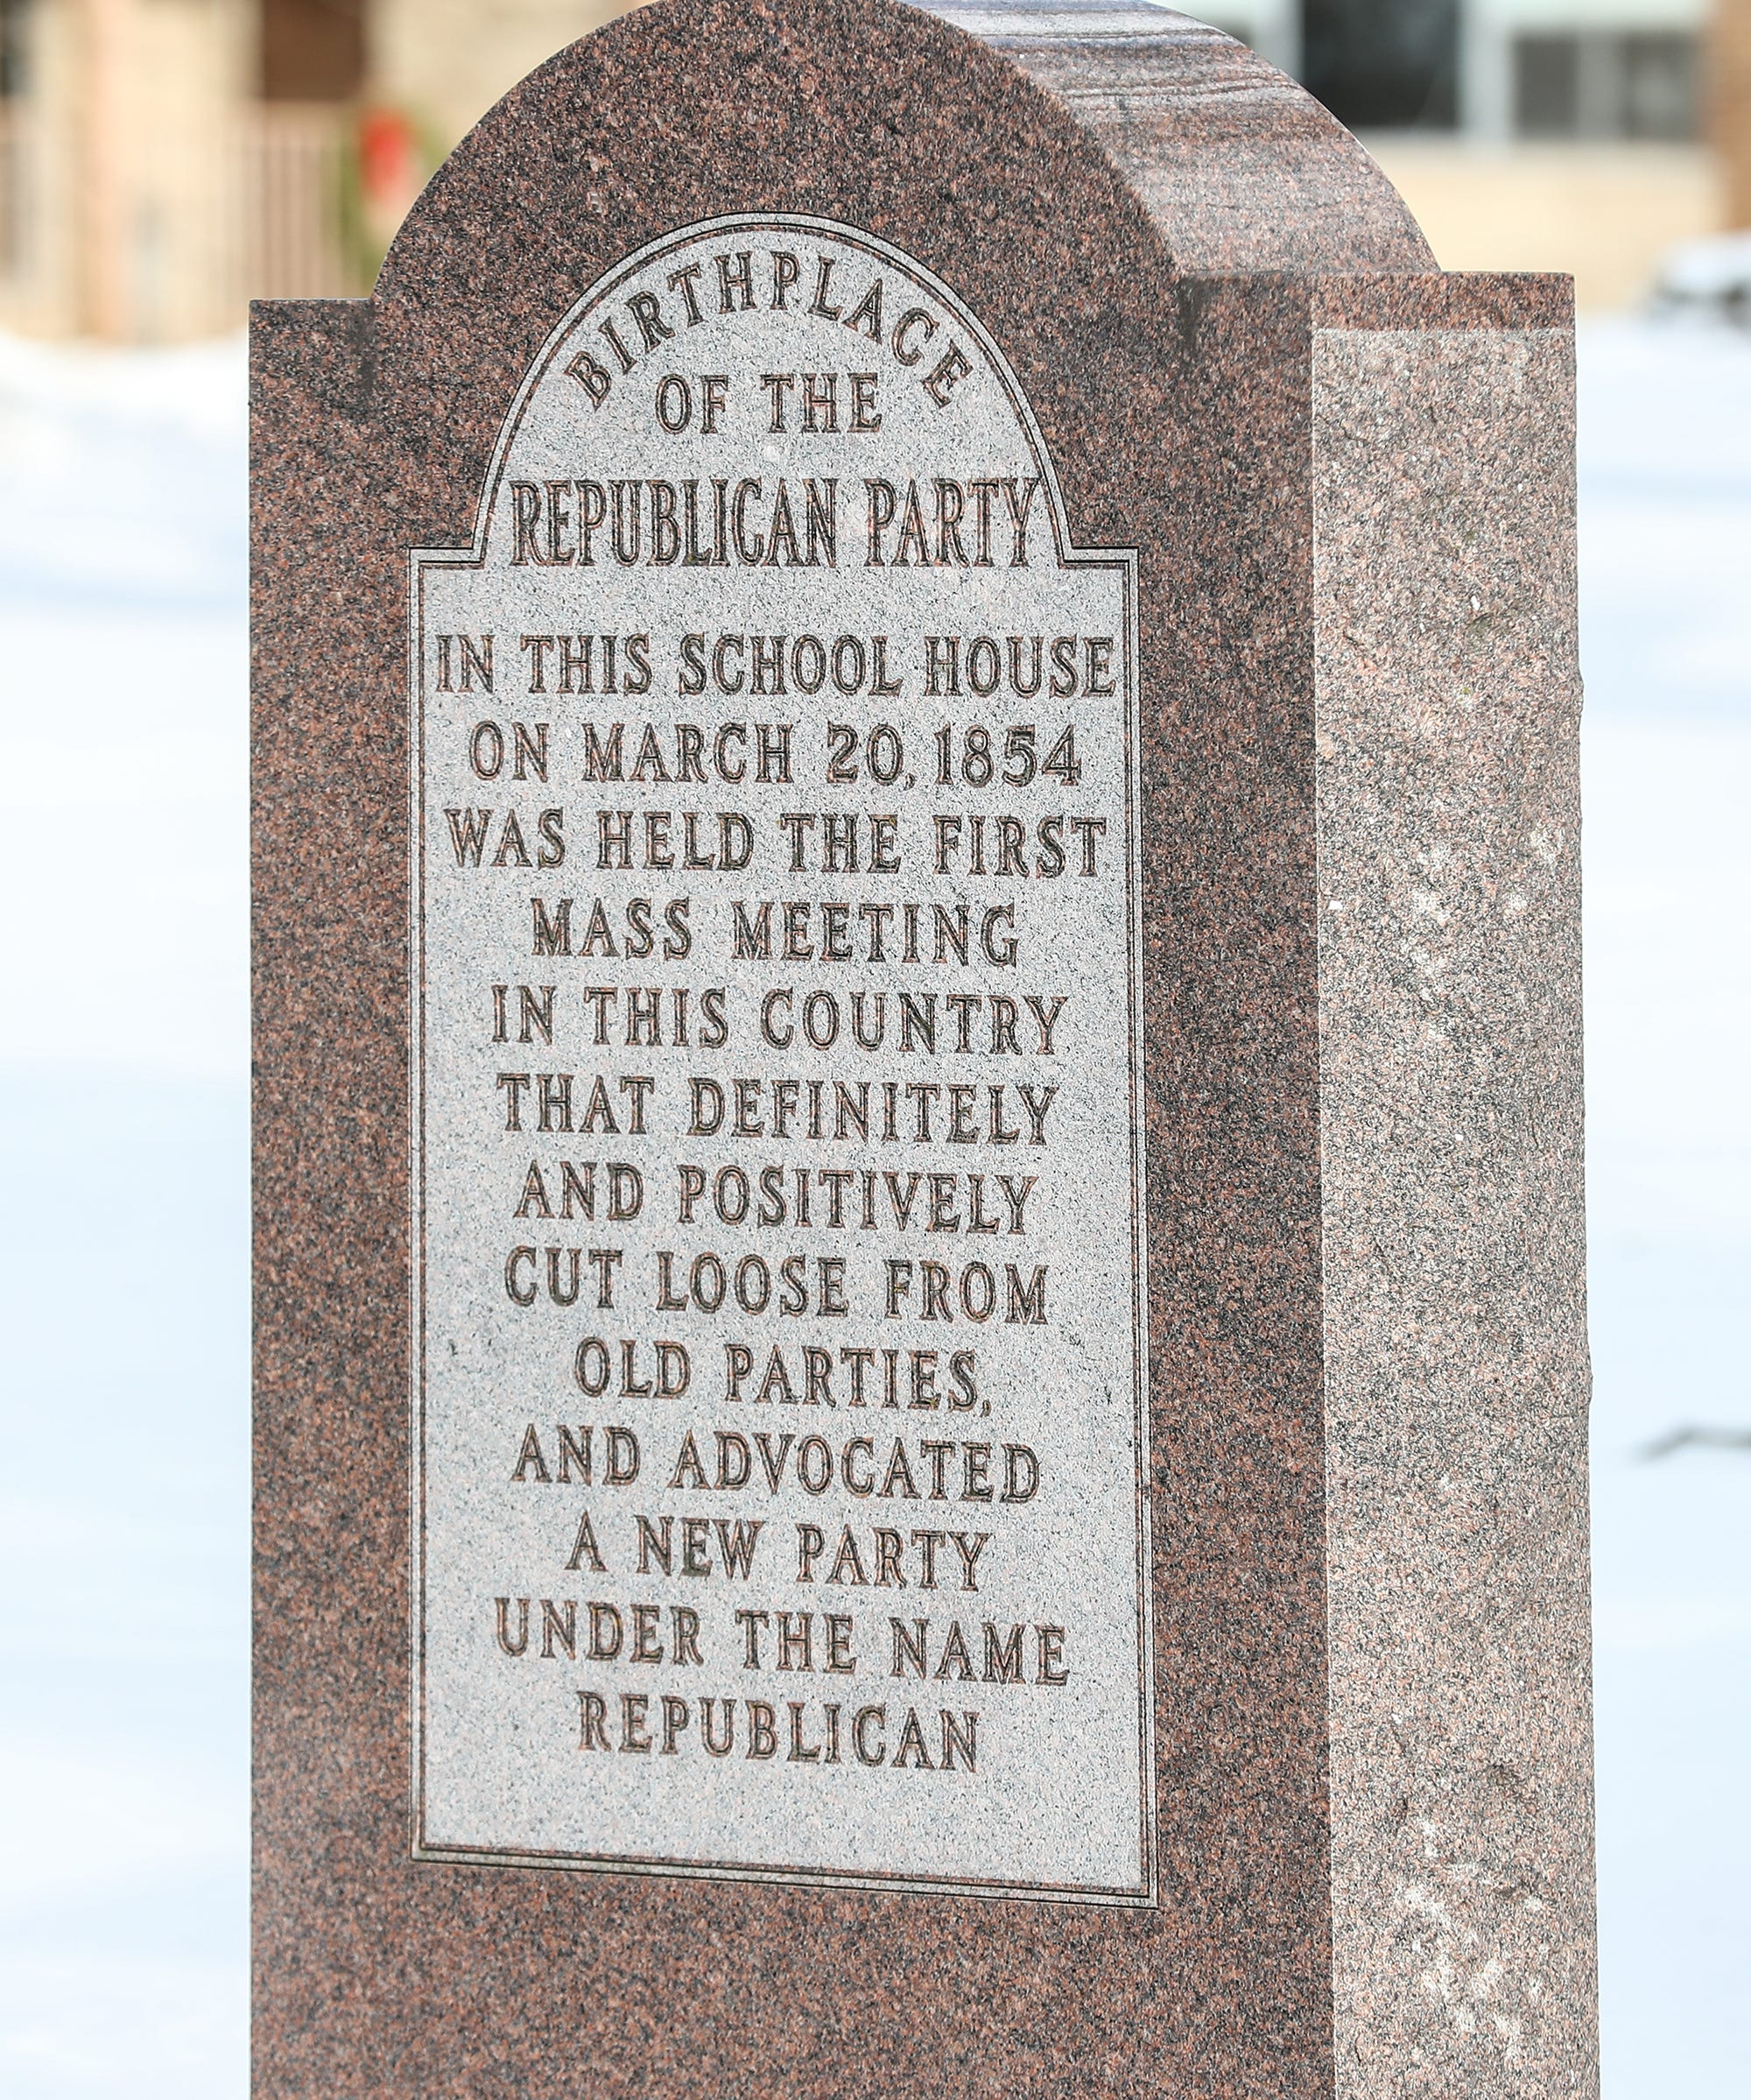 A monument stands outside the Little White Schoolhouse, also known as the Birthplace of the Republican Party, at 305 Blackburn St. in Ripon.